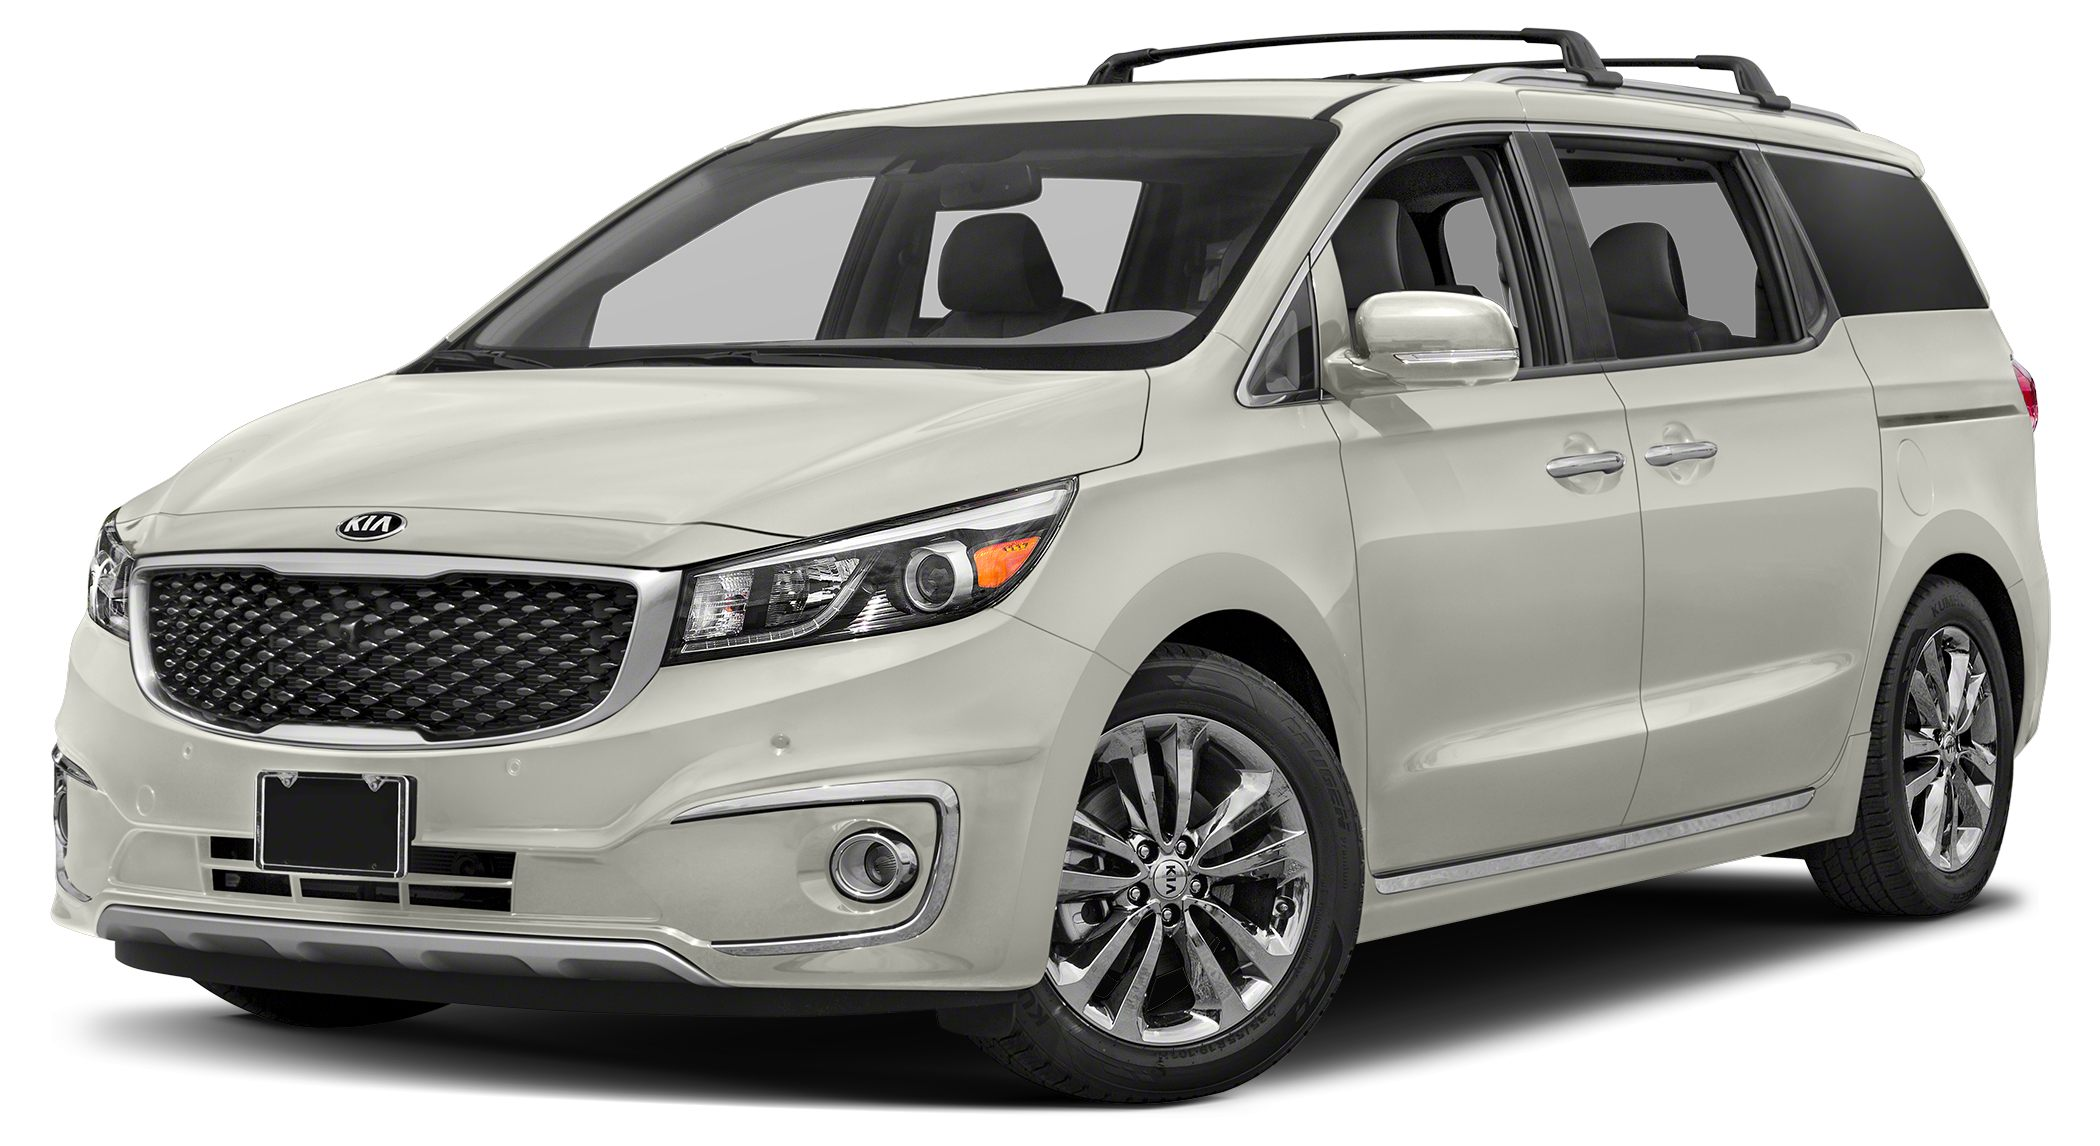 2017 Kia Sedona SX Luxury Color Snow White Pearl Stock K5715 VIN KNDME5C15H6334098